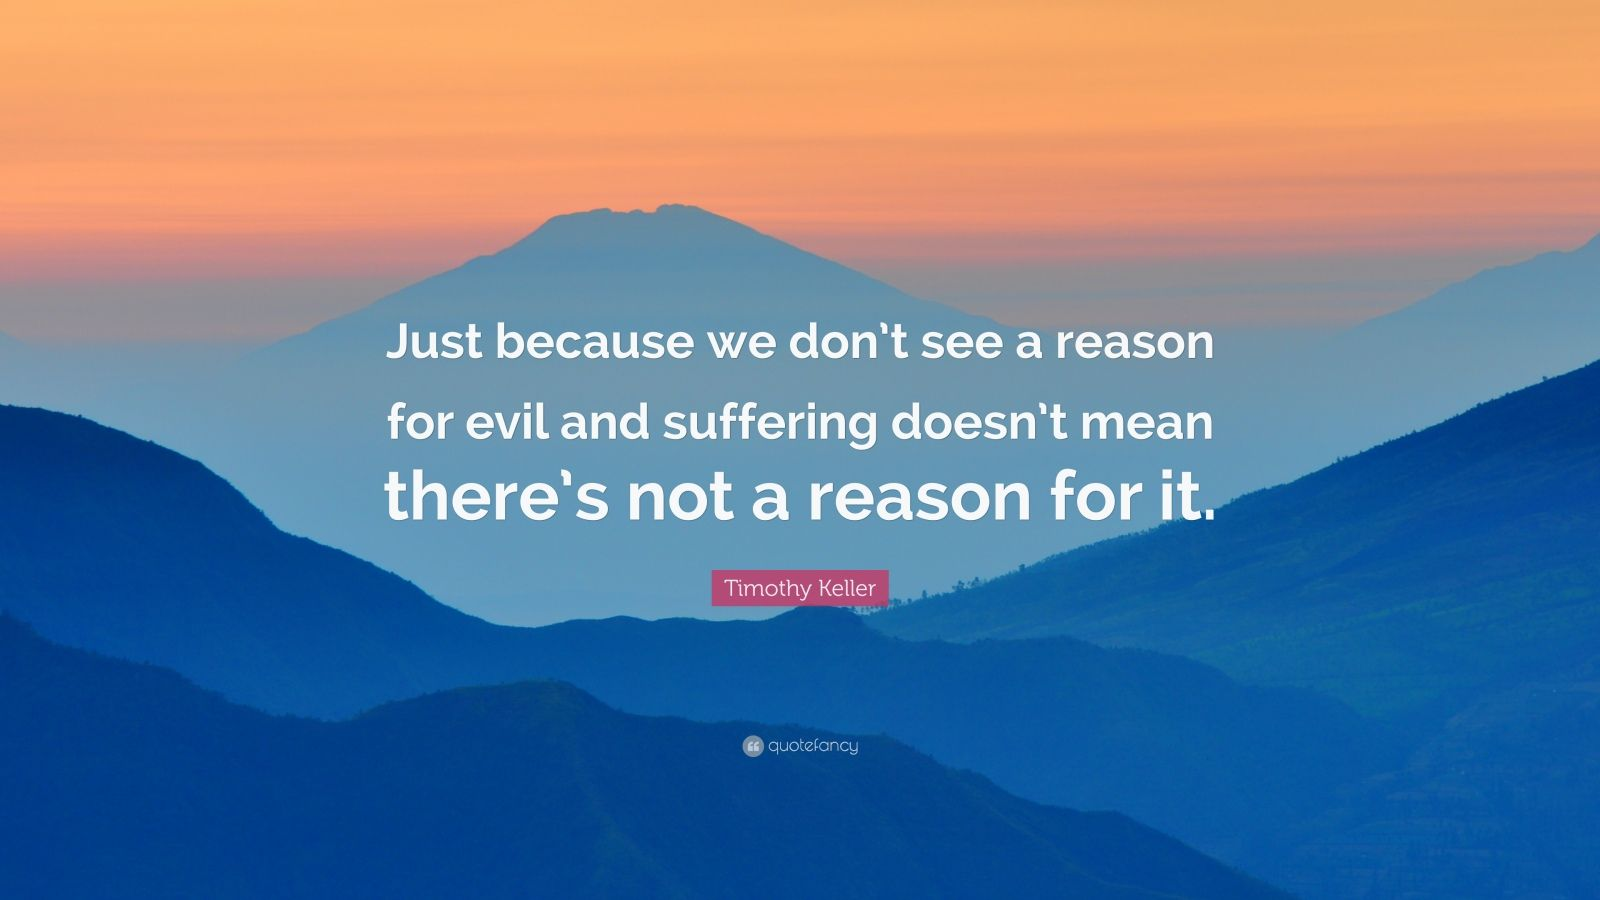 """Timothy Keller Quote: """"Just because we don't see a reason for evil and suffering doesn't mean there's not a reason for it."""""""